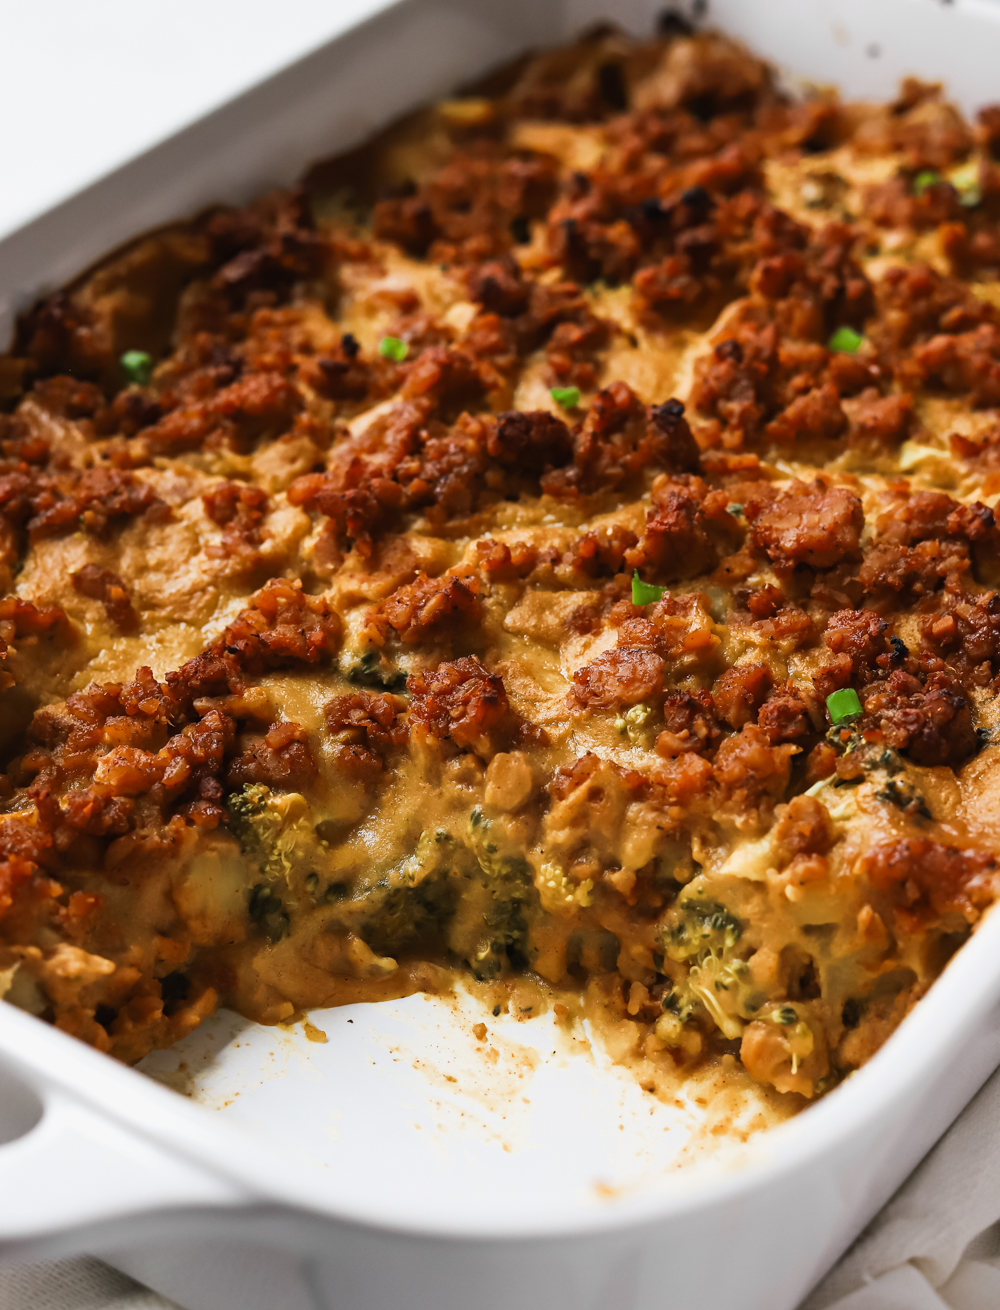 Cheesy vegan broccoli potato casserole with tempeh sausage crumbles with a big scoop taken out of it.